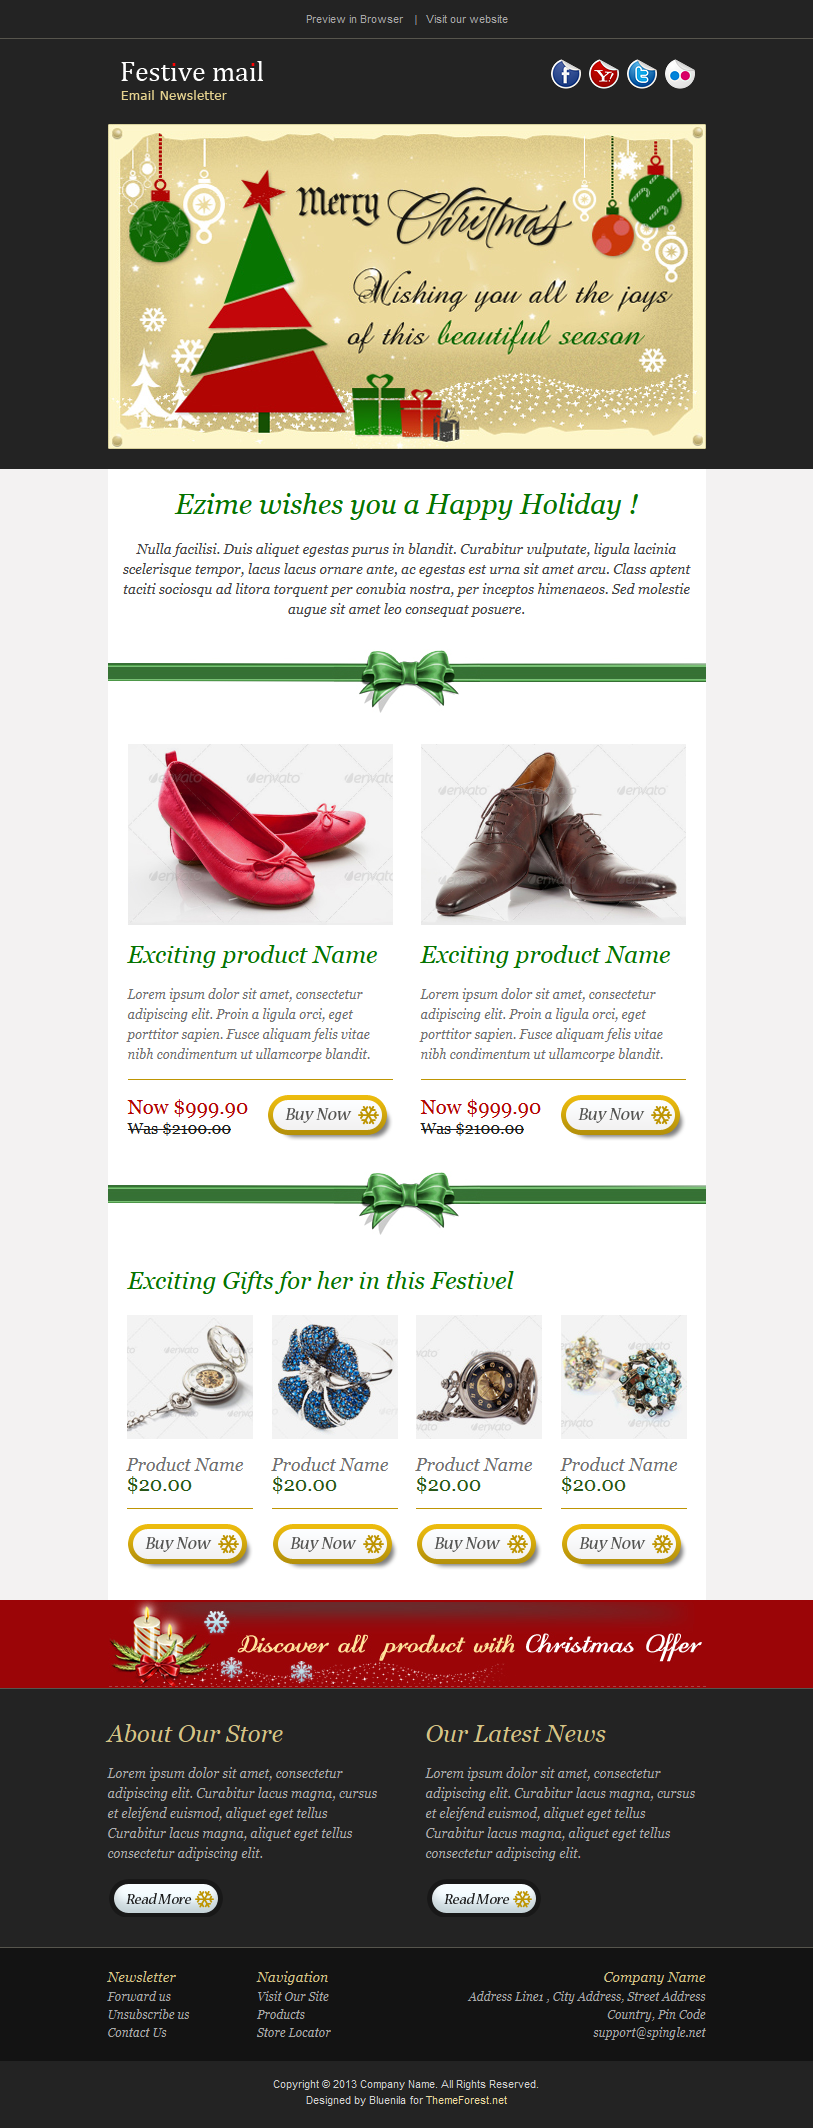 Vintage Holiday Newsletter template for you in this Festive season – Holiday Newsletter Template